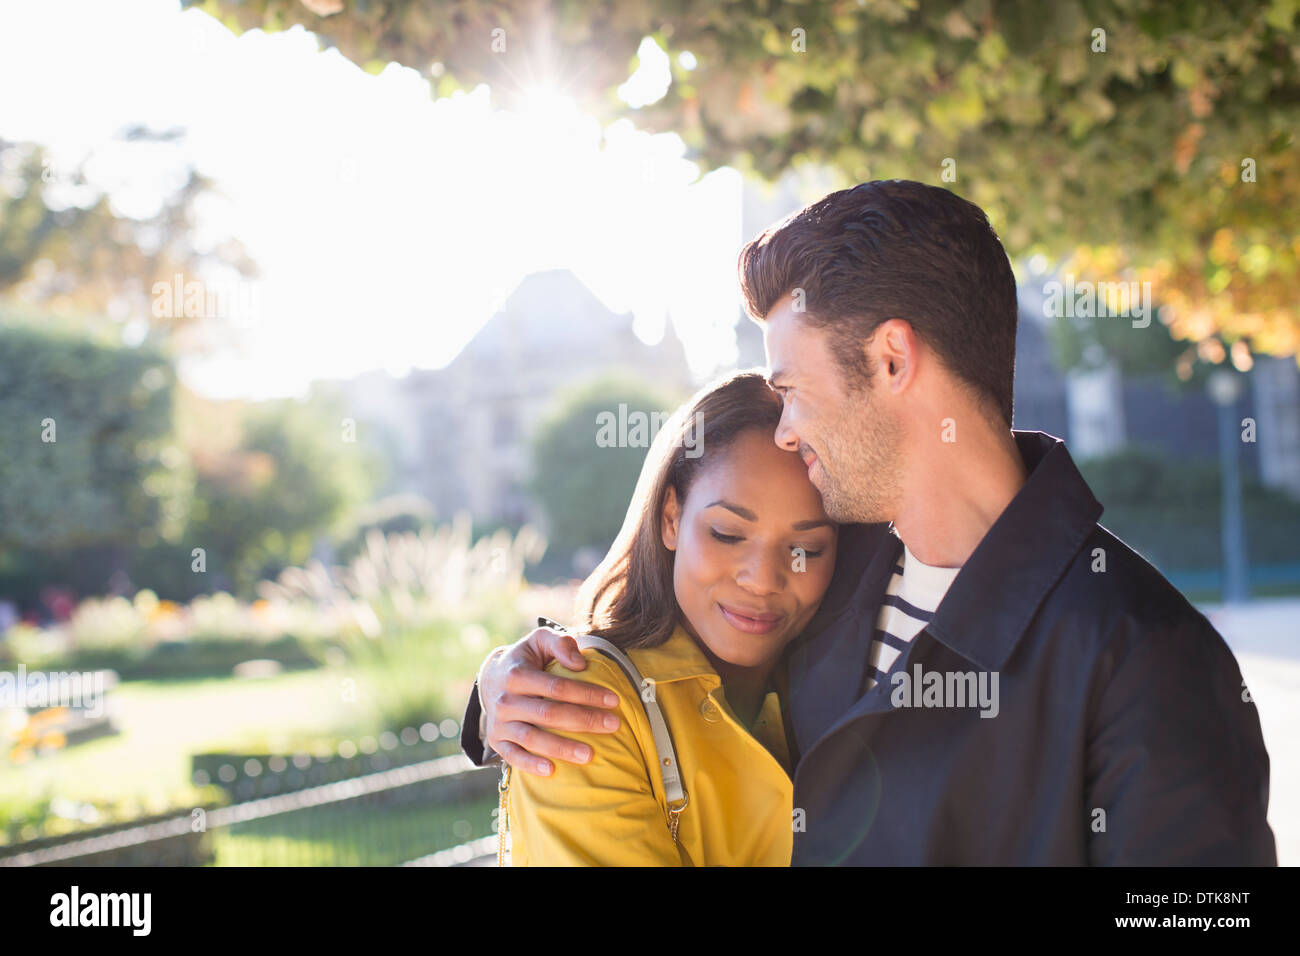 Couple hugging in urban park - Stock Image